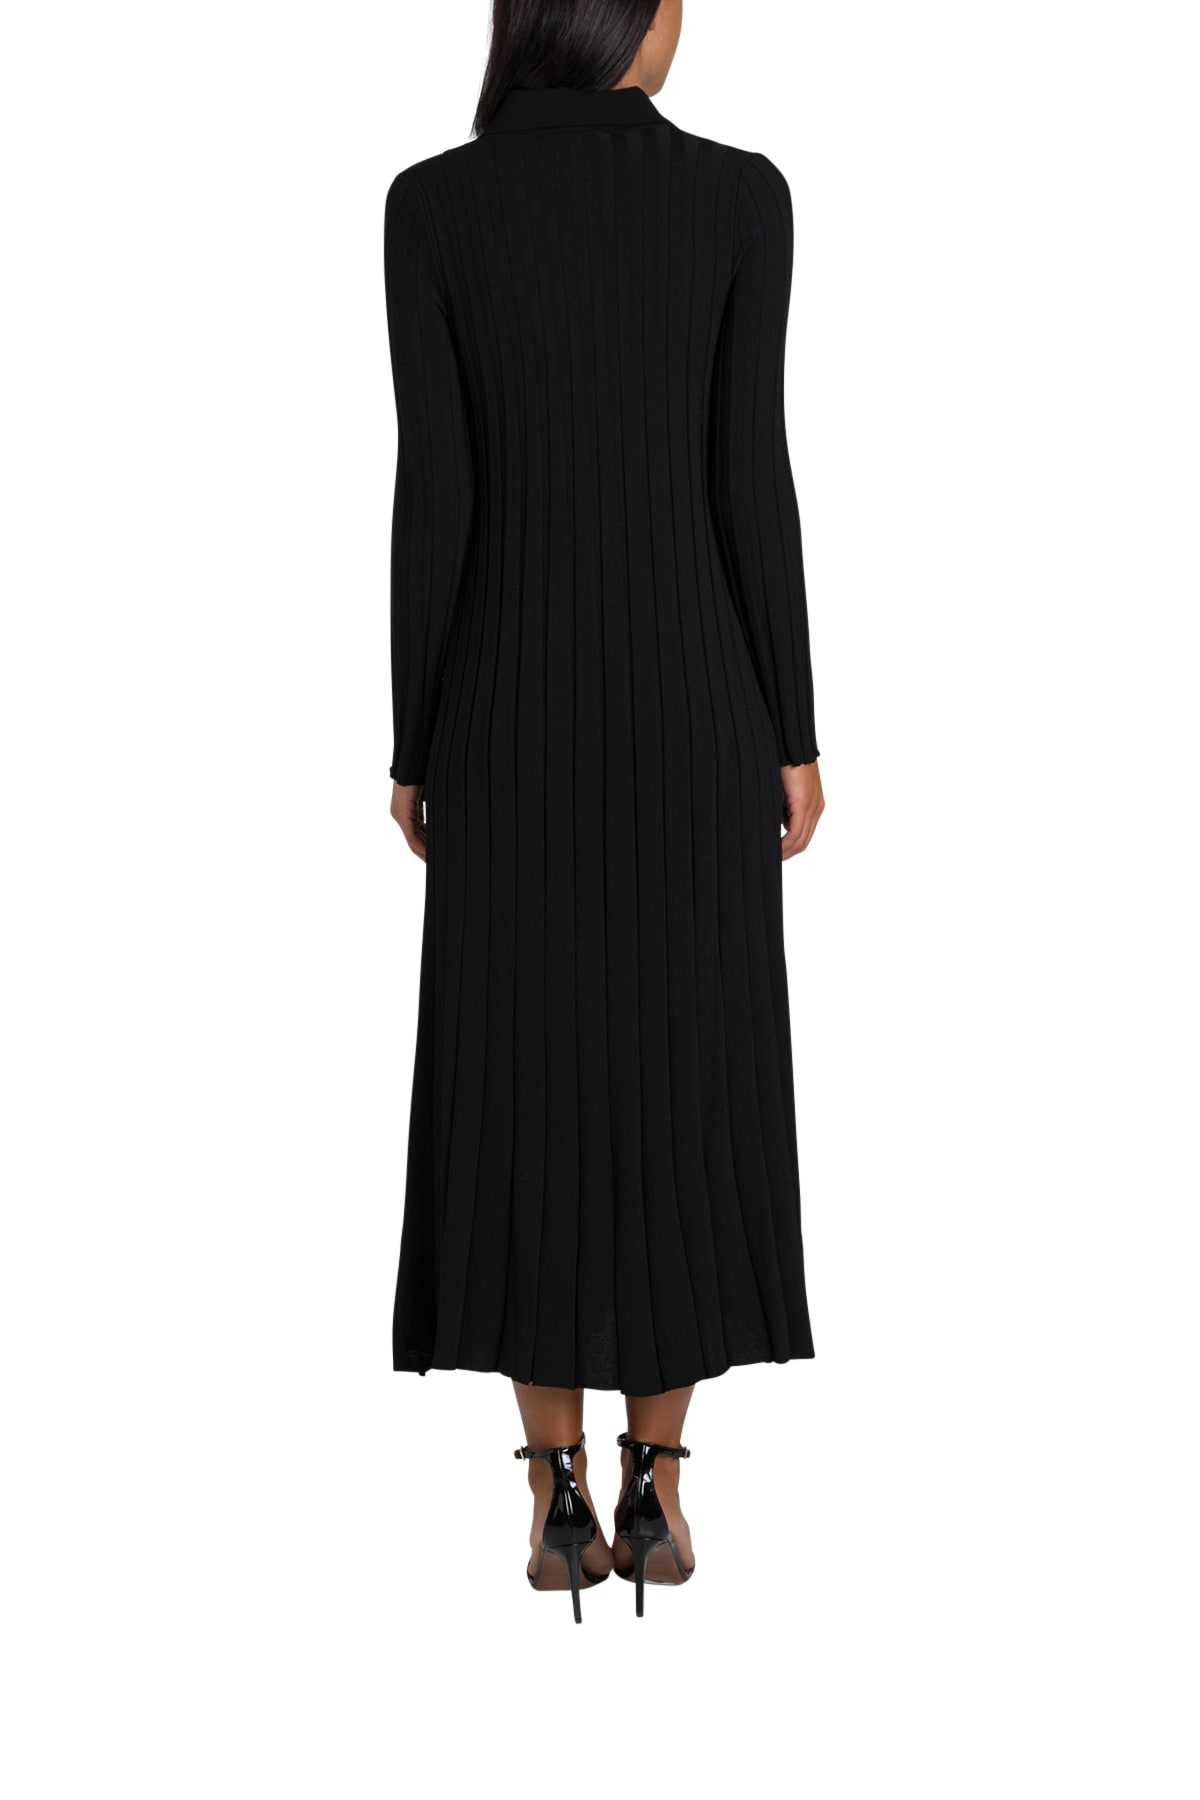 Buy Mauro Grifoni Ribbed Maxi Dress online, shop Mauro Grifoni with free shipping